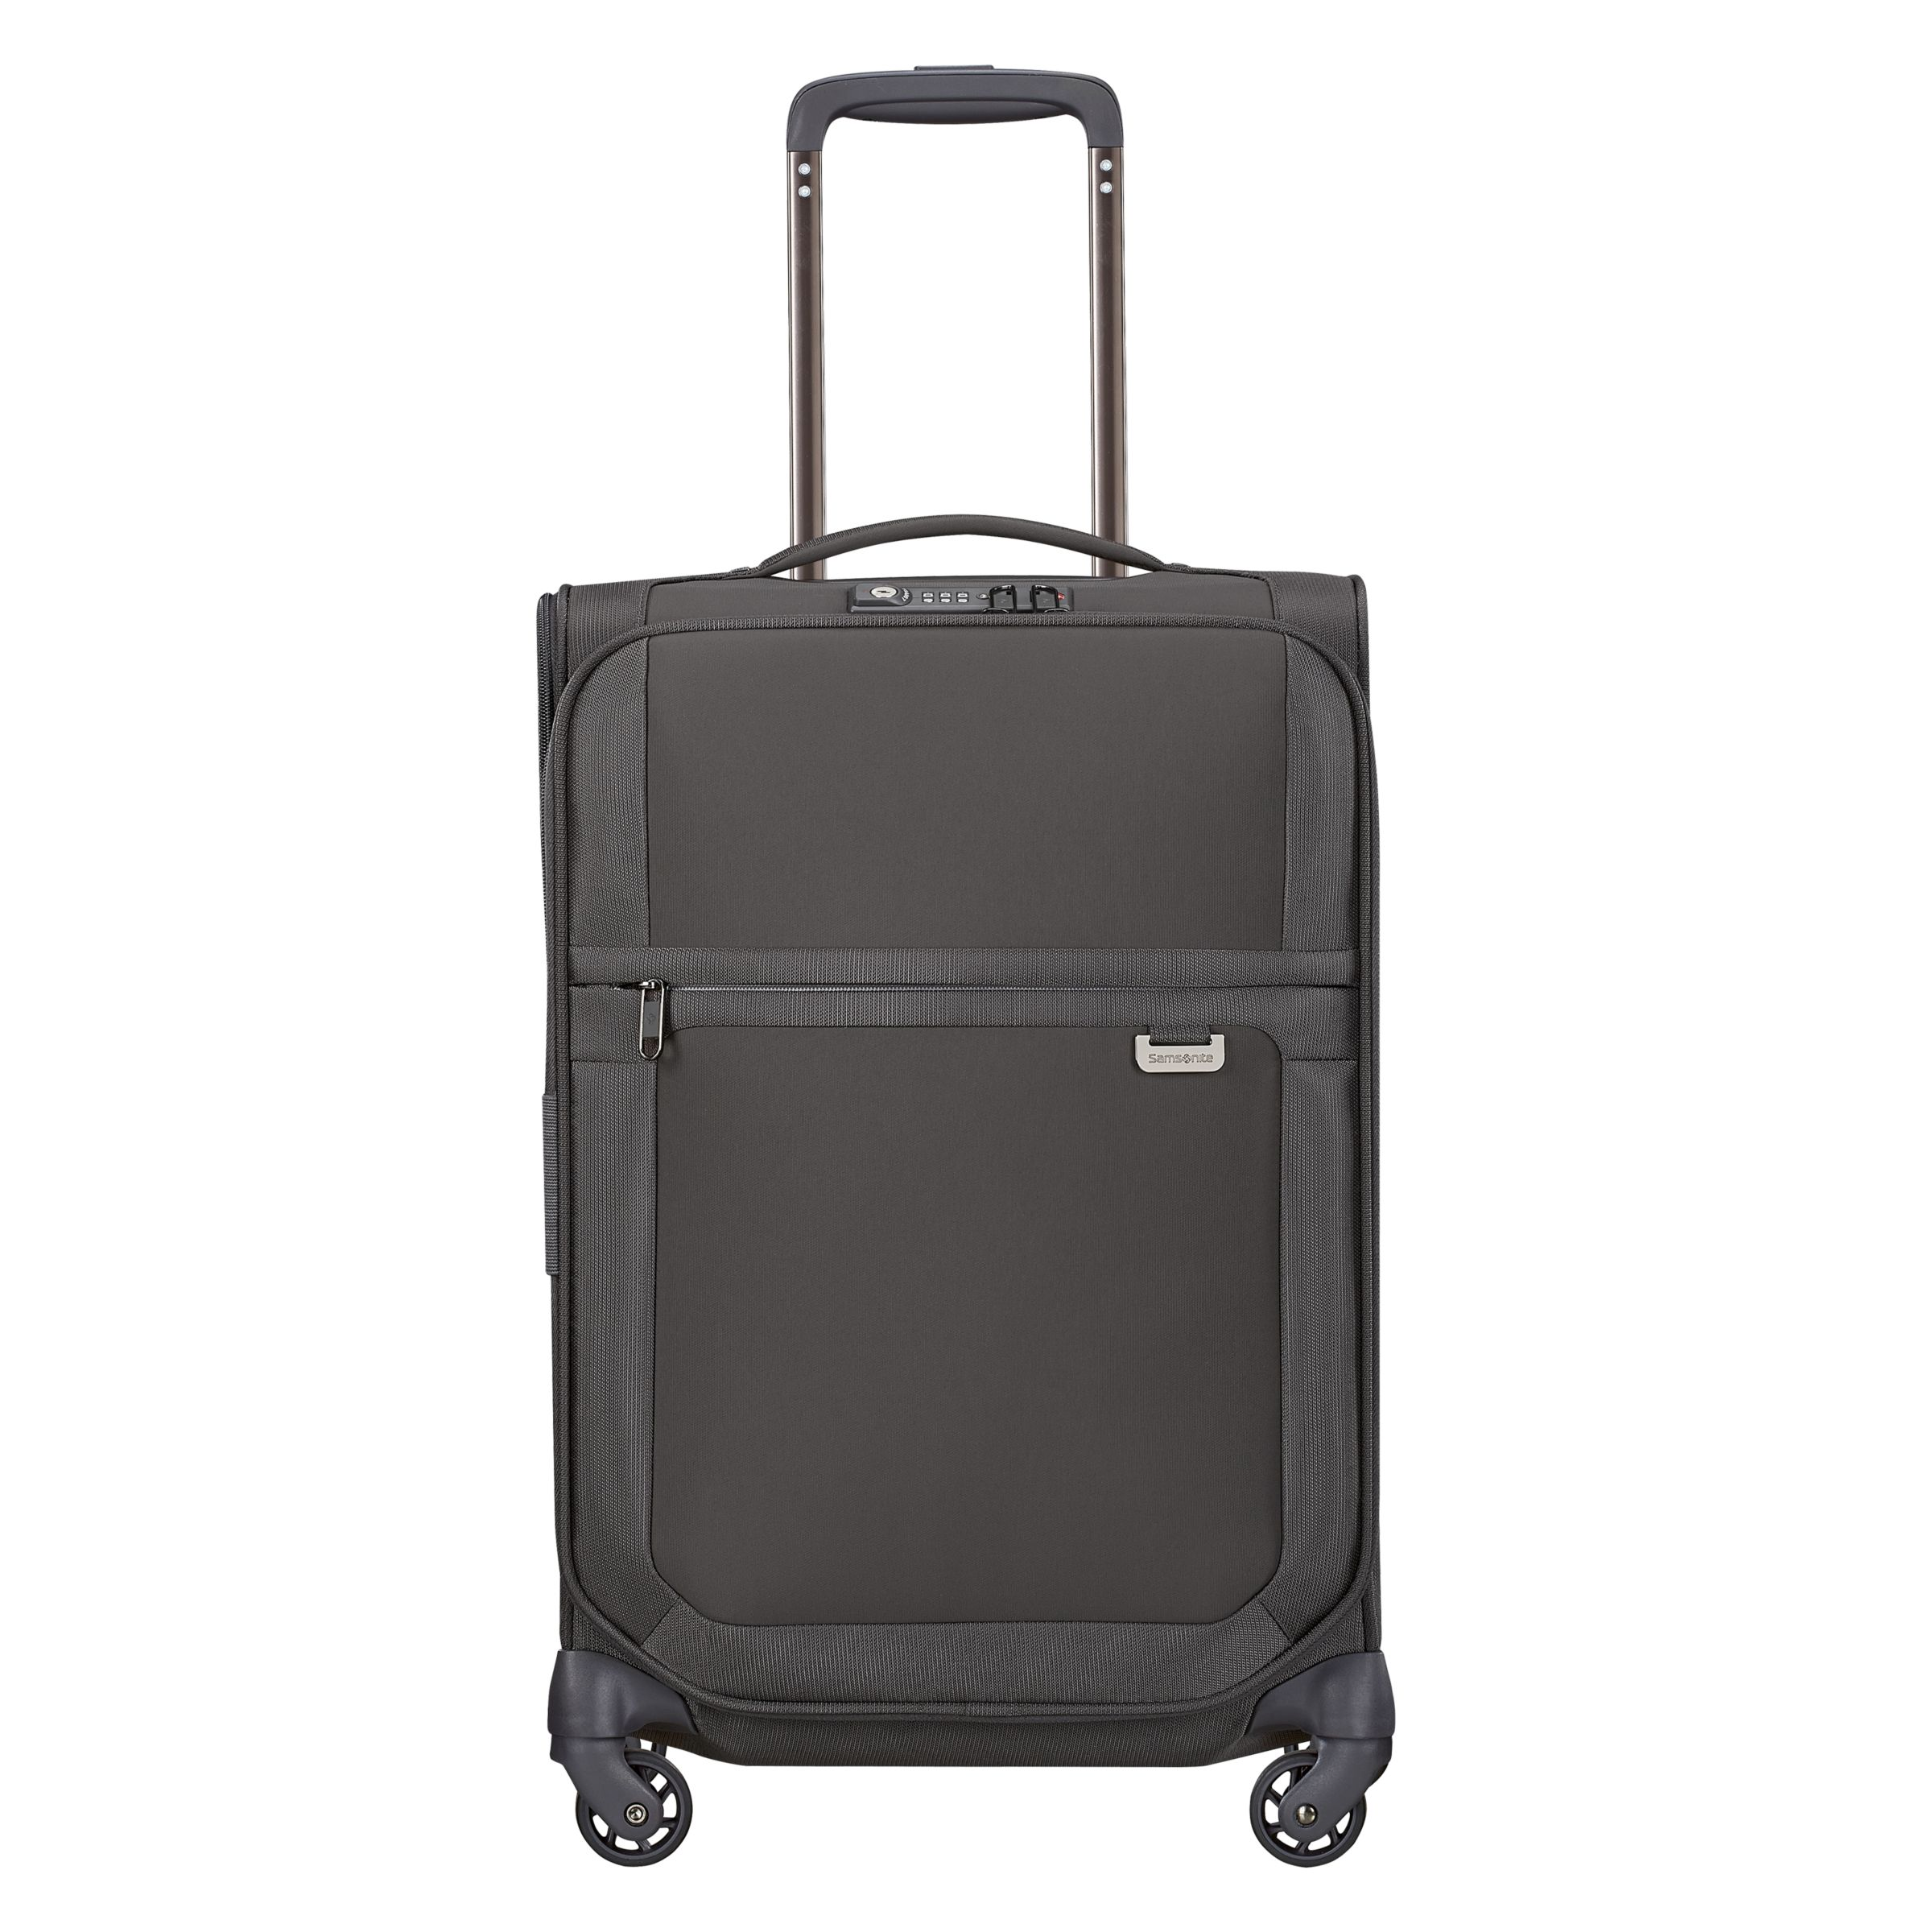 Samsonite Samsonite Uplite 4-Wheel 55cm Cabin Spinner Suitcase